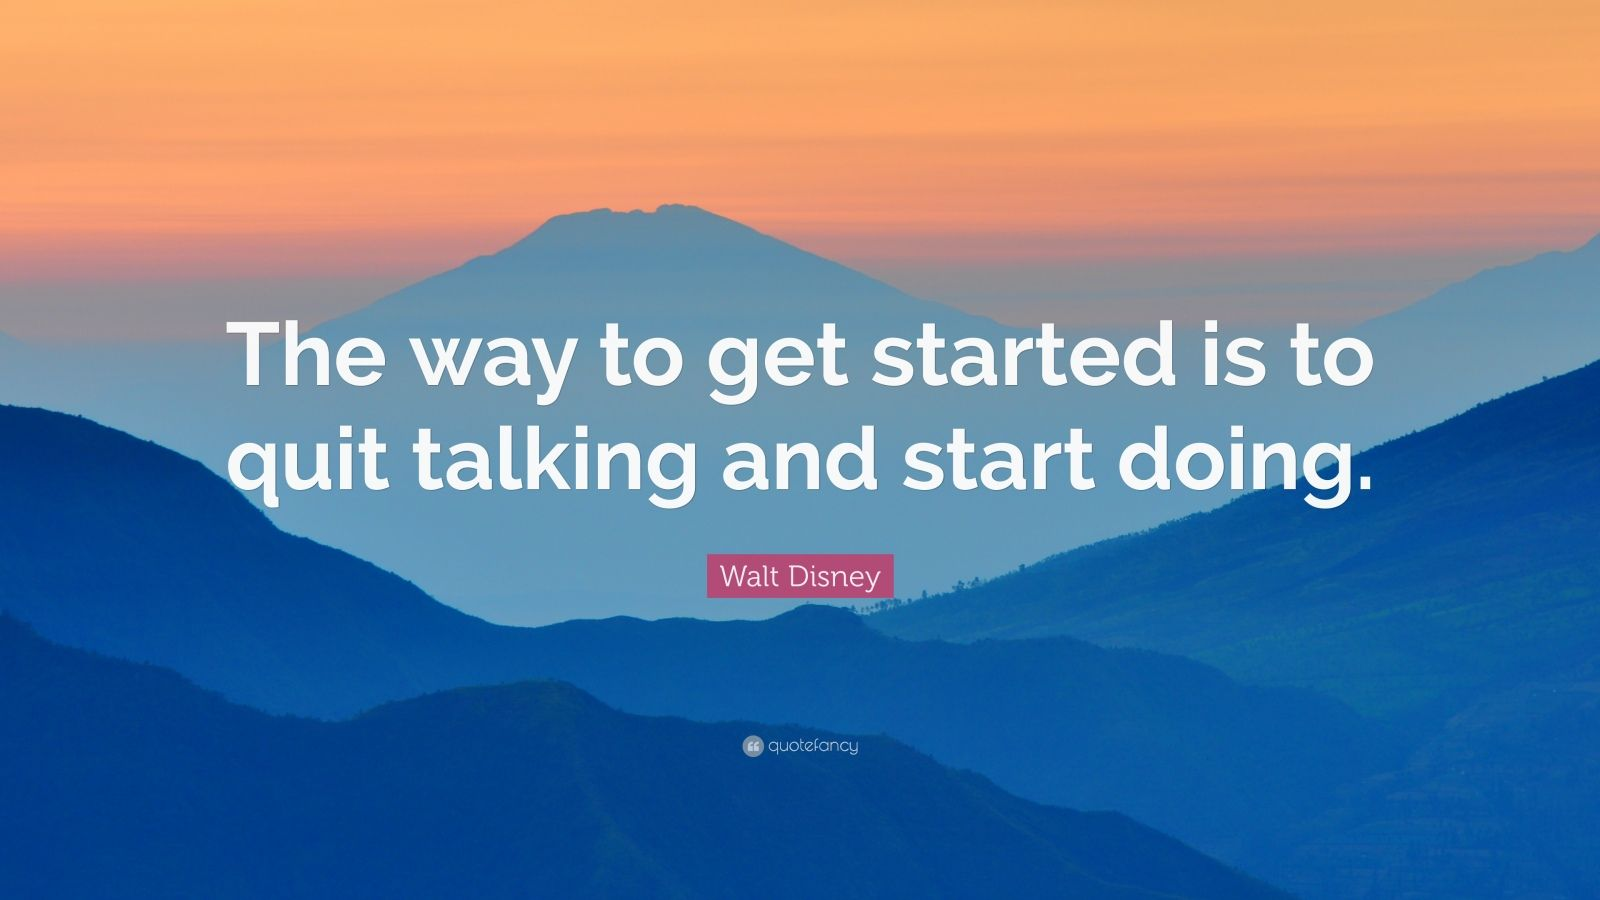 Walt Disney Wallpaper Quotes Walt Disney Quote The Way To Get Started Is To Quit